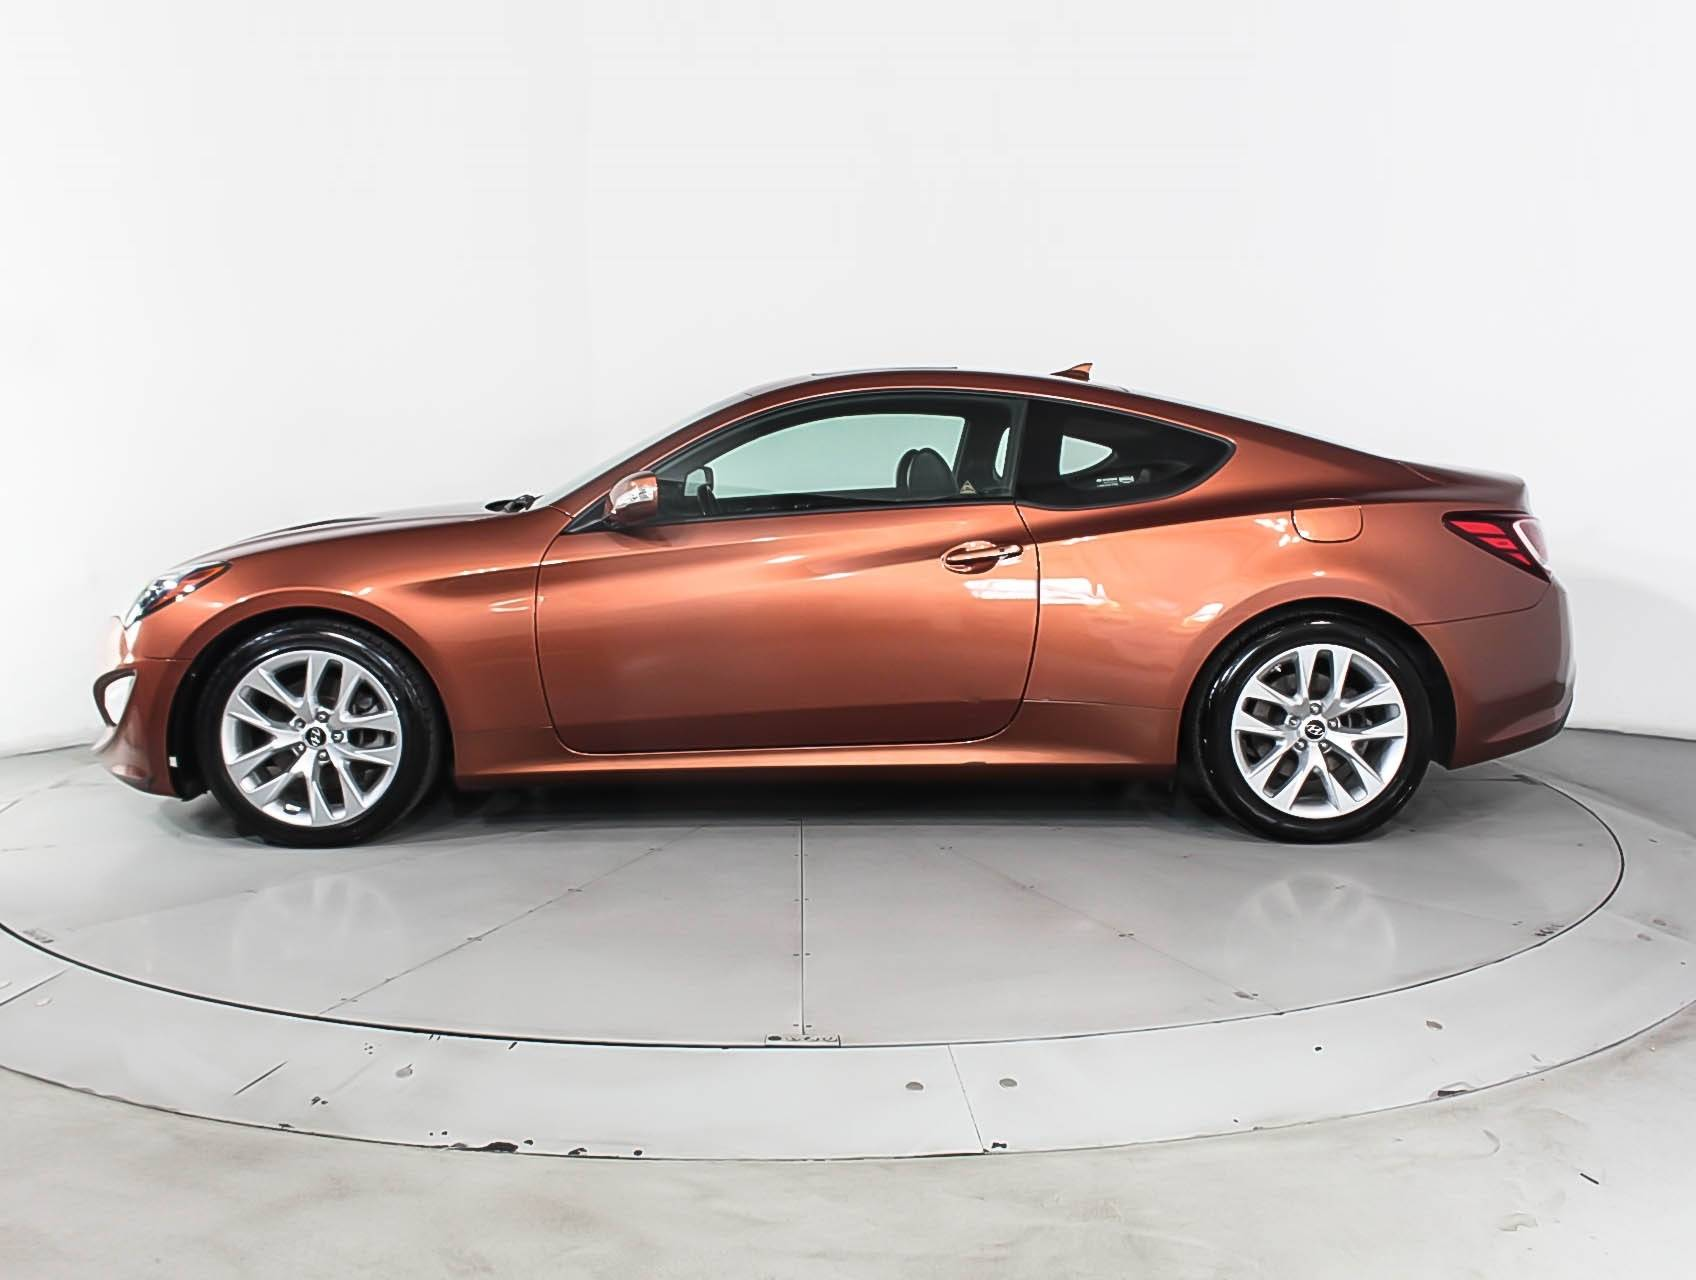 Used 2013 HYUNDAI GENESIS COUPE GRAND TOURING Coupe for sale in MIAMI, FL |  96628 | Florida Fine Cars